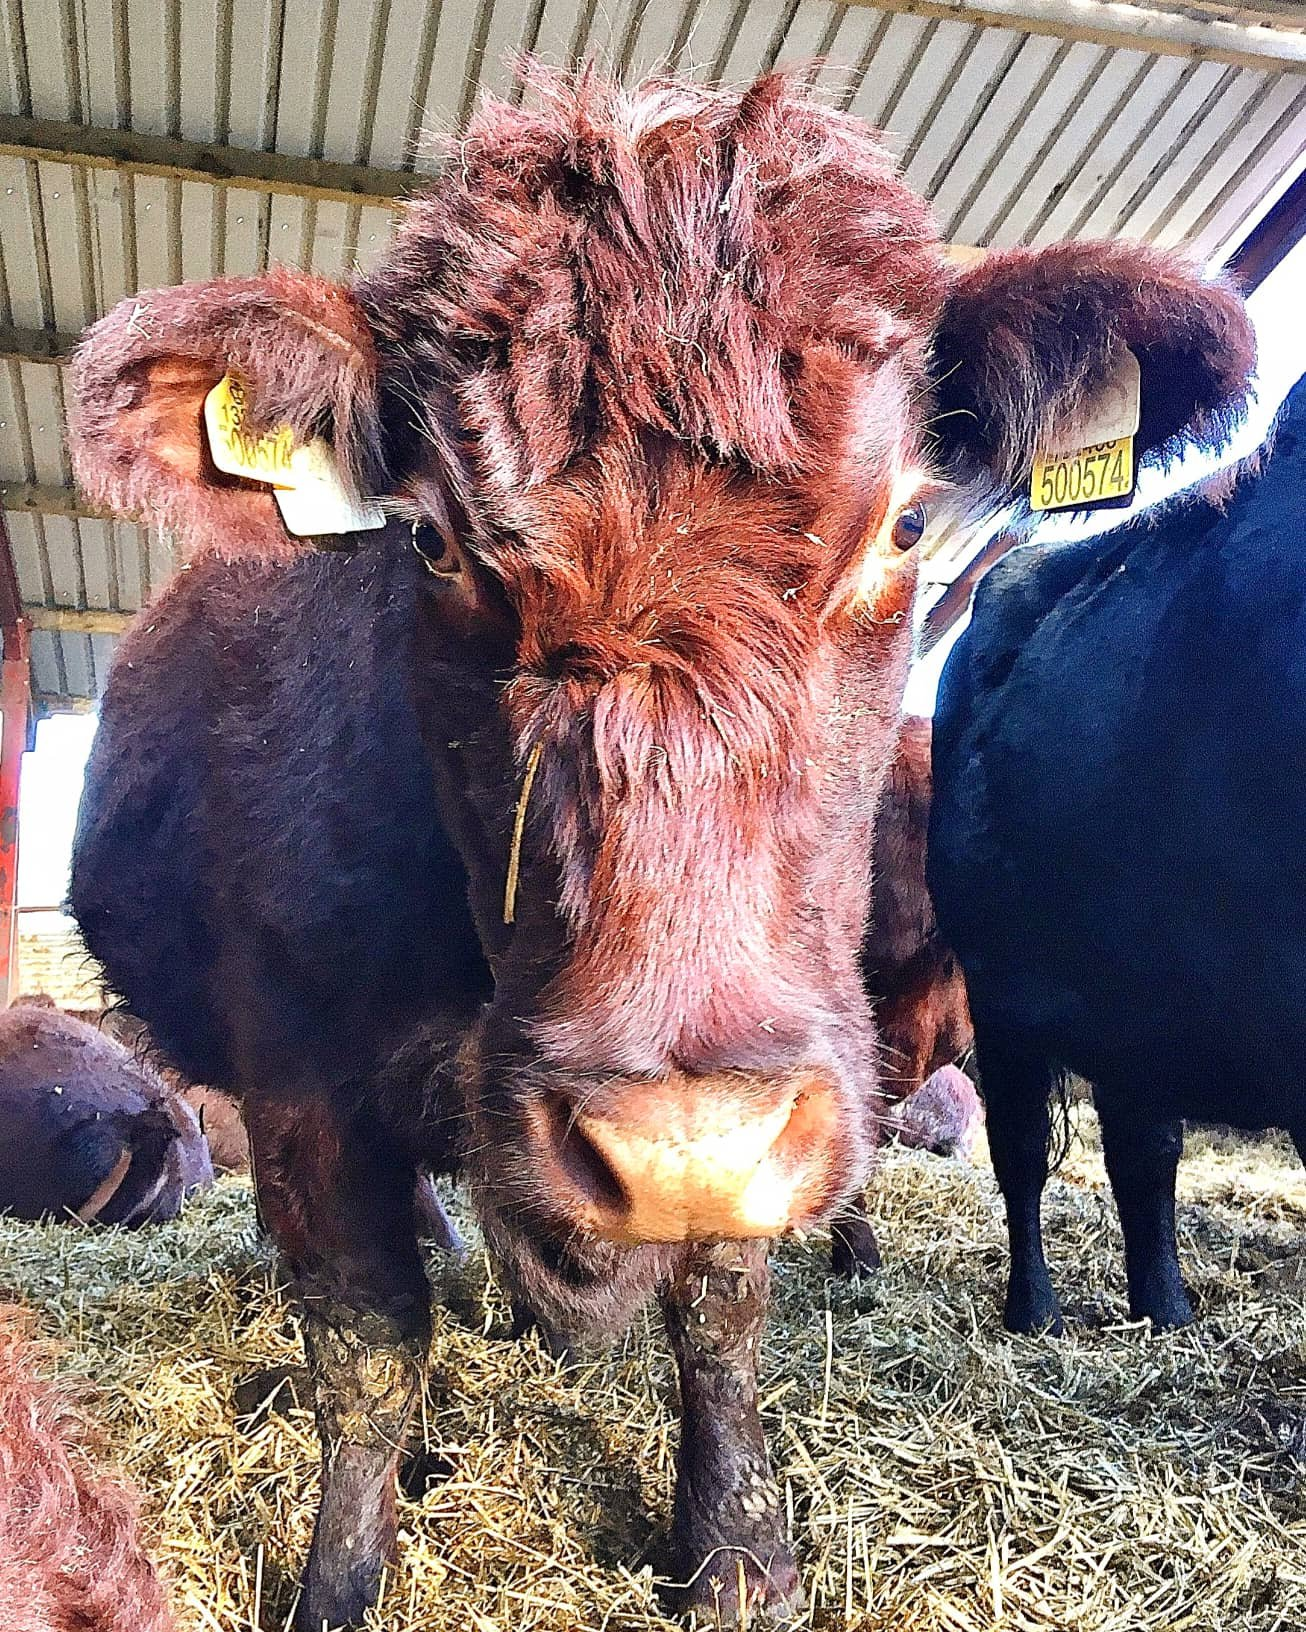 Mahogany Lincoln red cow peering down at the camera from inside a straw bedded shed.